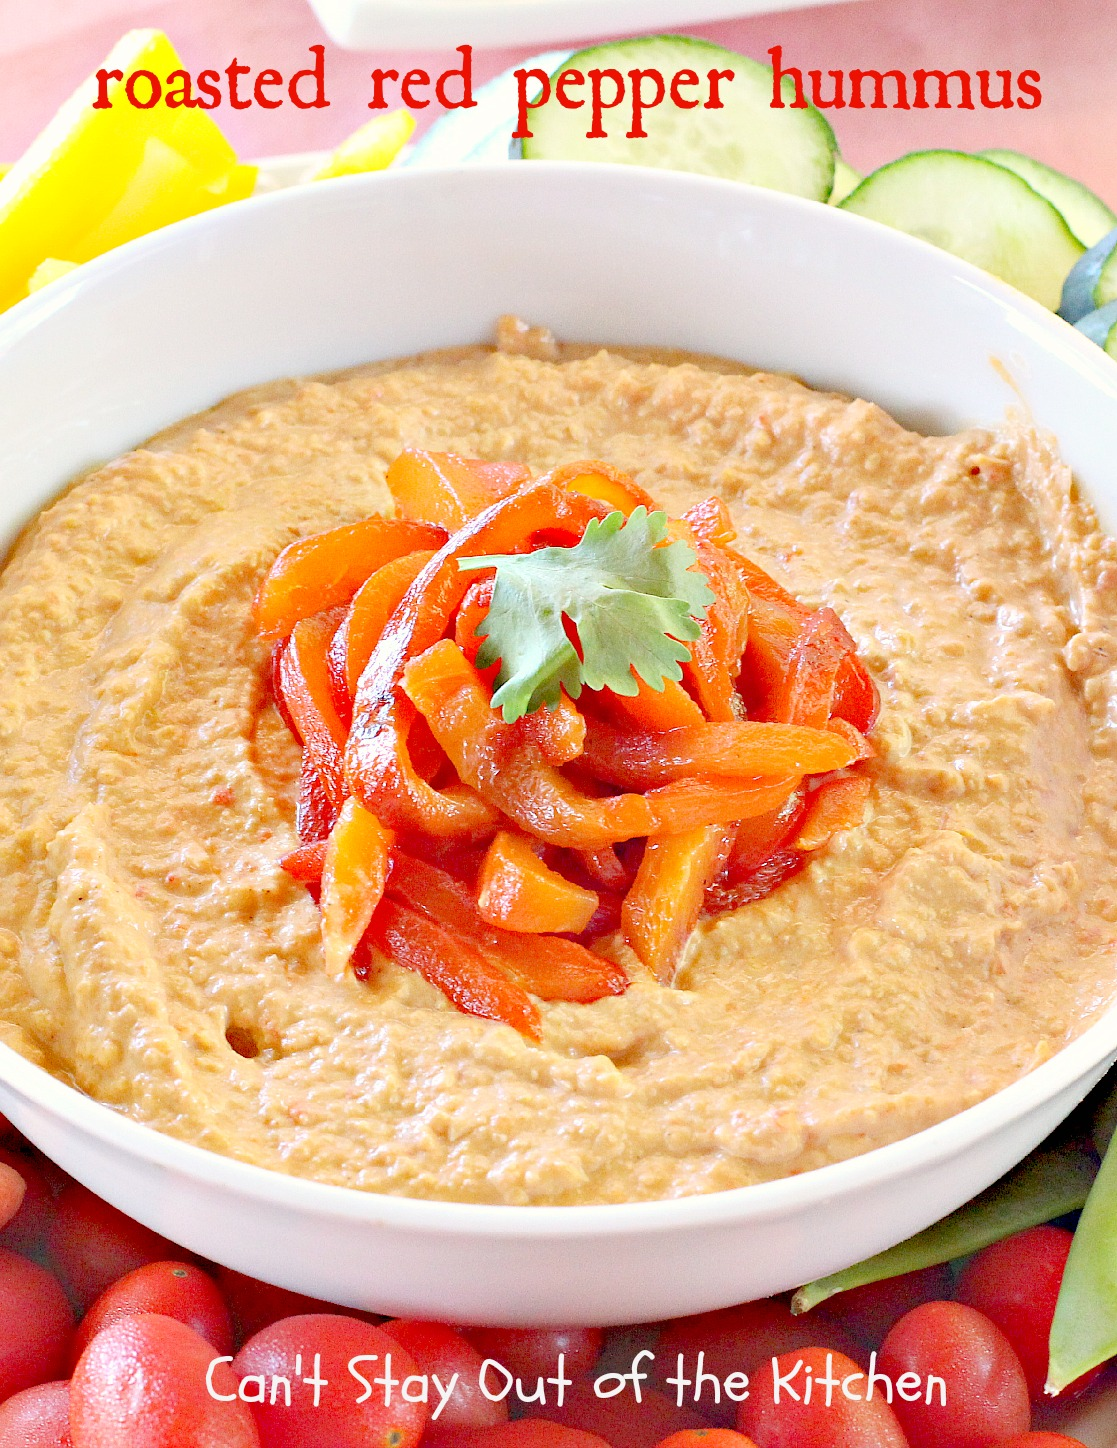 Paprika Hummus Dip - Can't Stay Out of the Kitchen